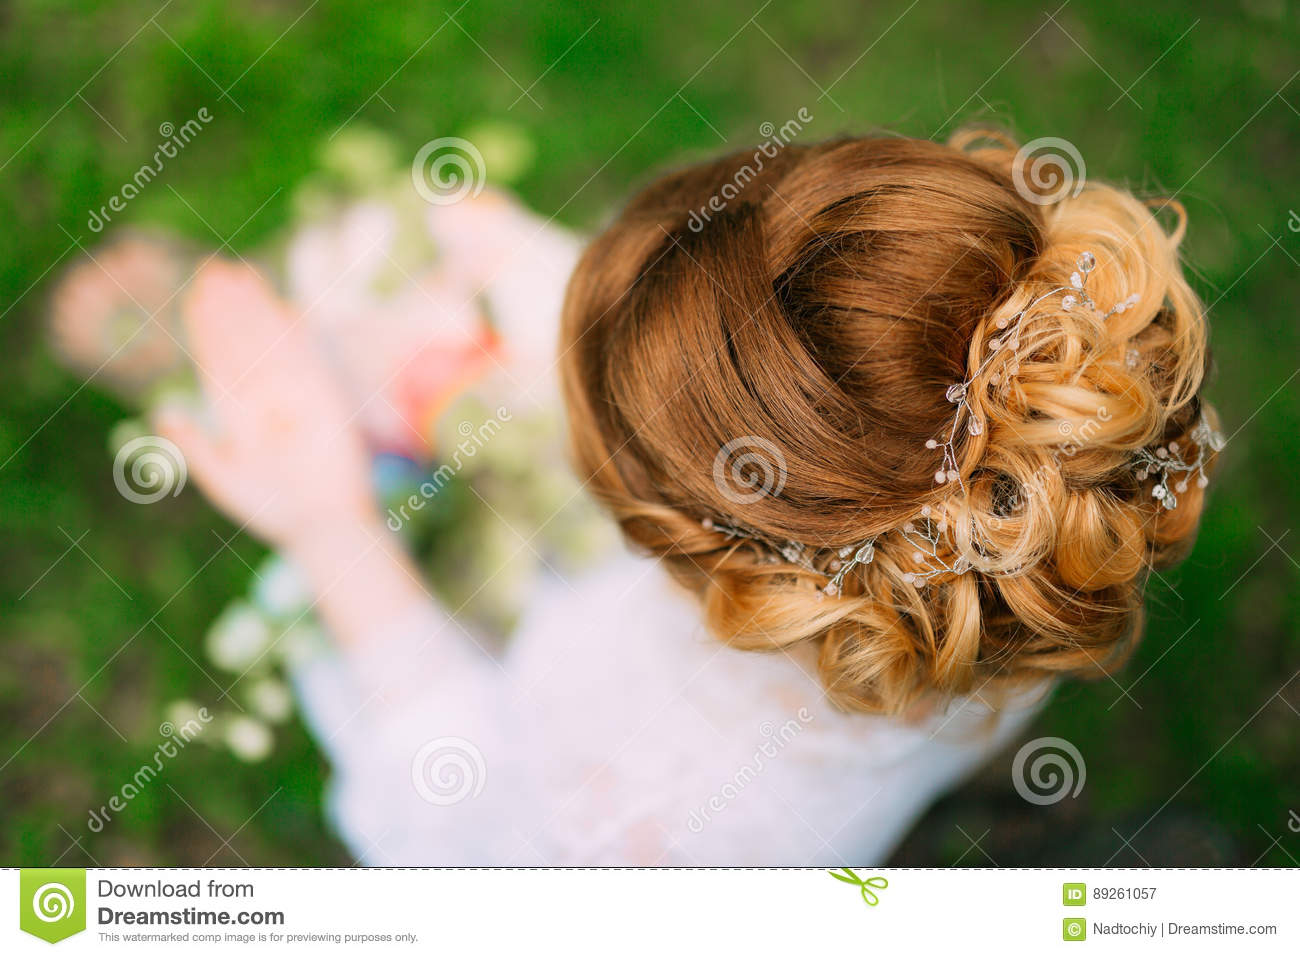 Hairstyle Of The Bride Close Up The Hairdresser Finished Making